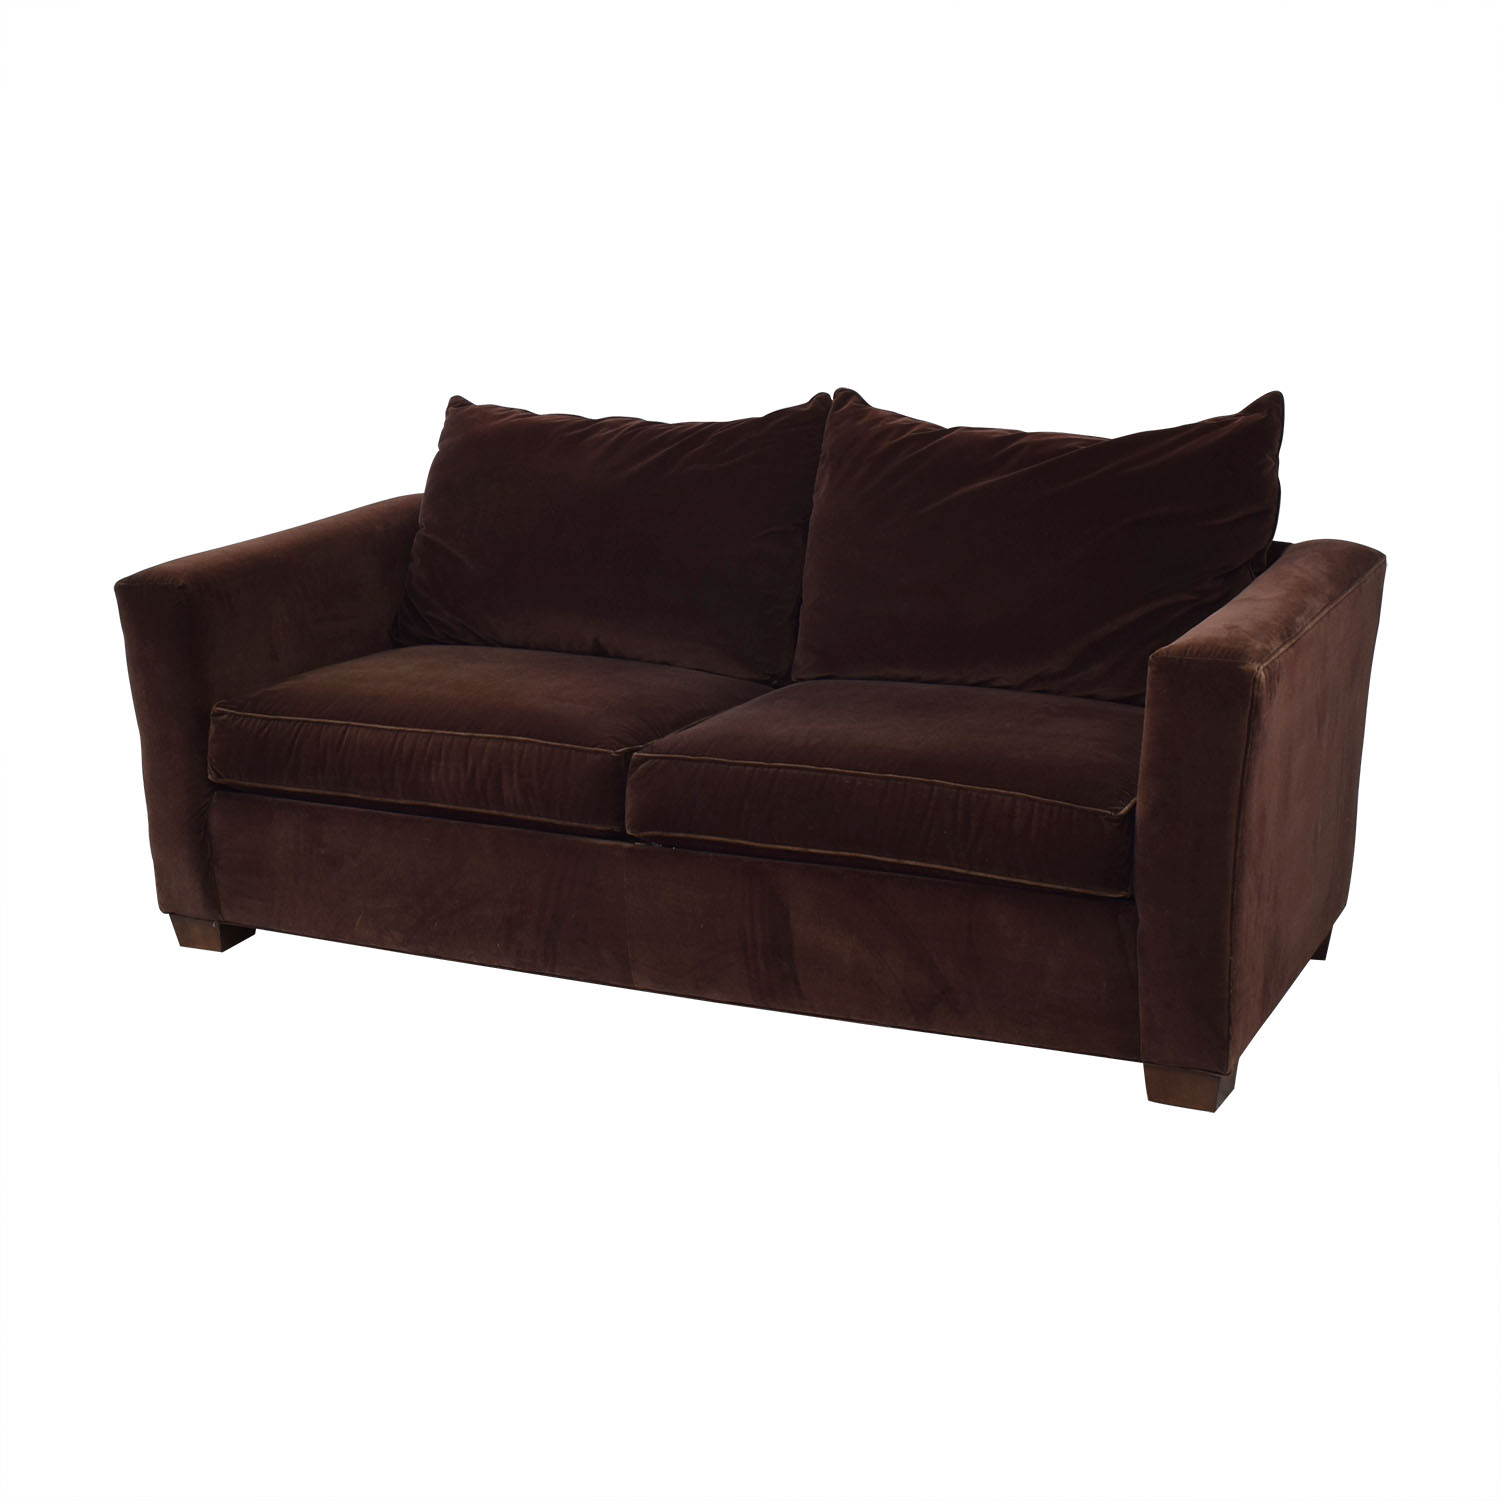 Ethan Allen Ethan Allen Custom Sofa coupon